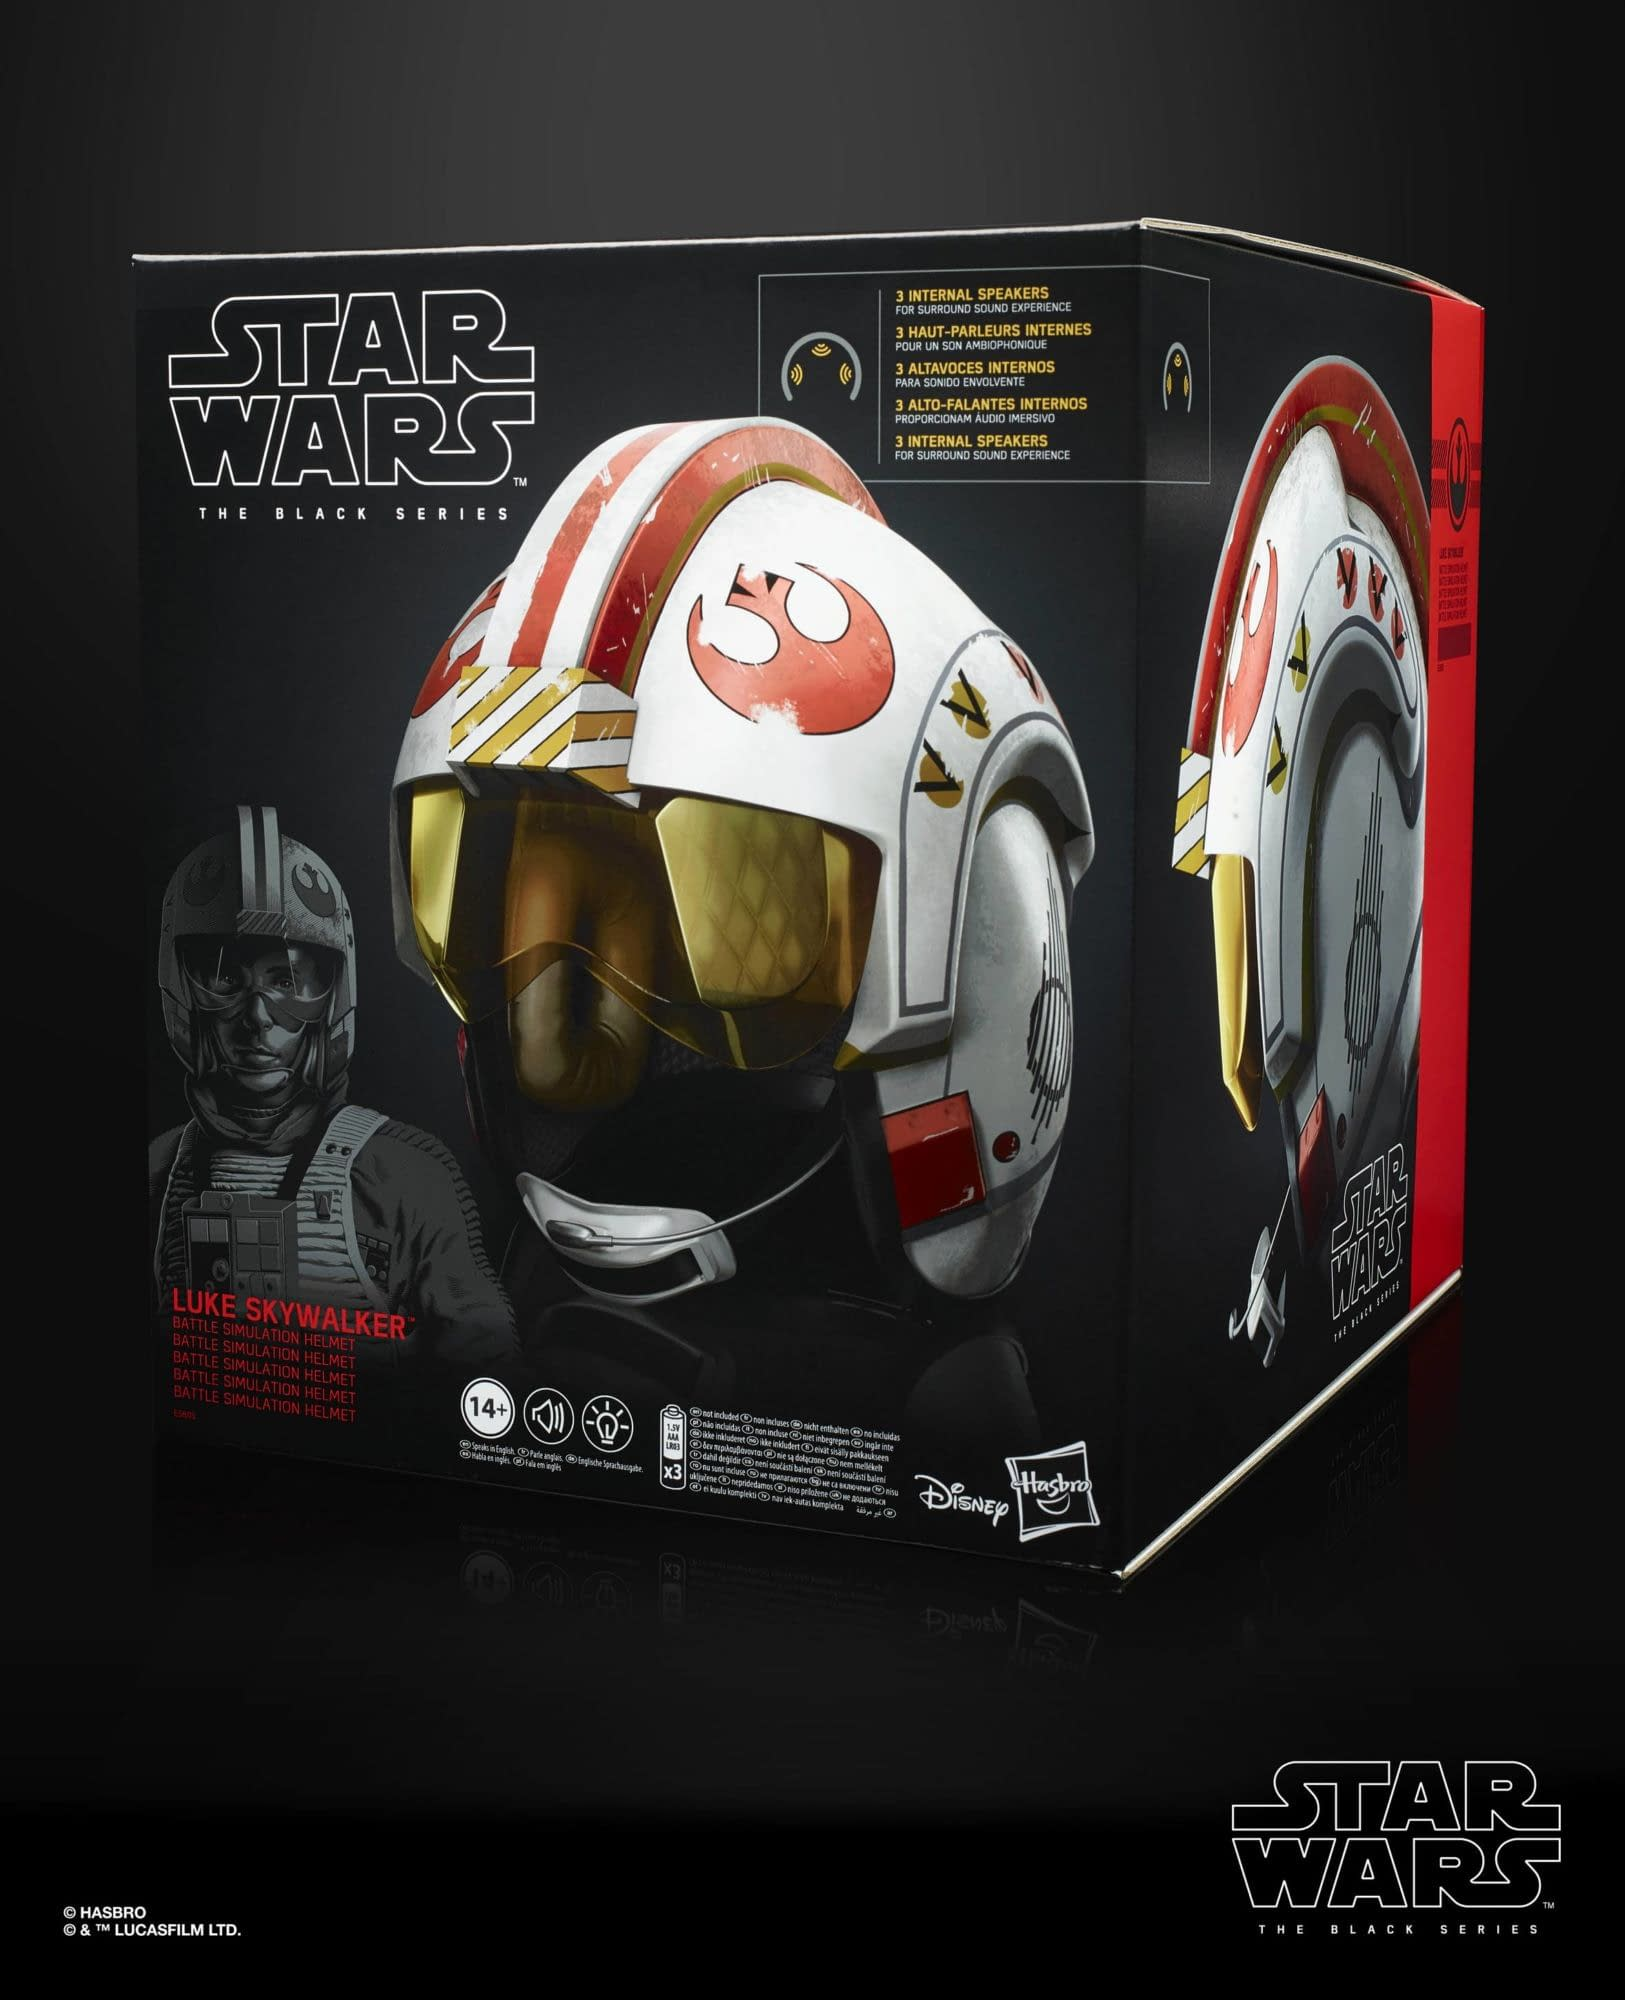 Star Wars Replicas from the Black Series Coming Soon